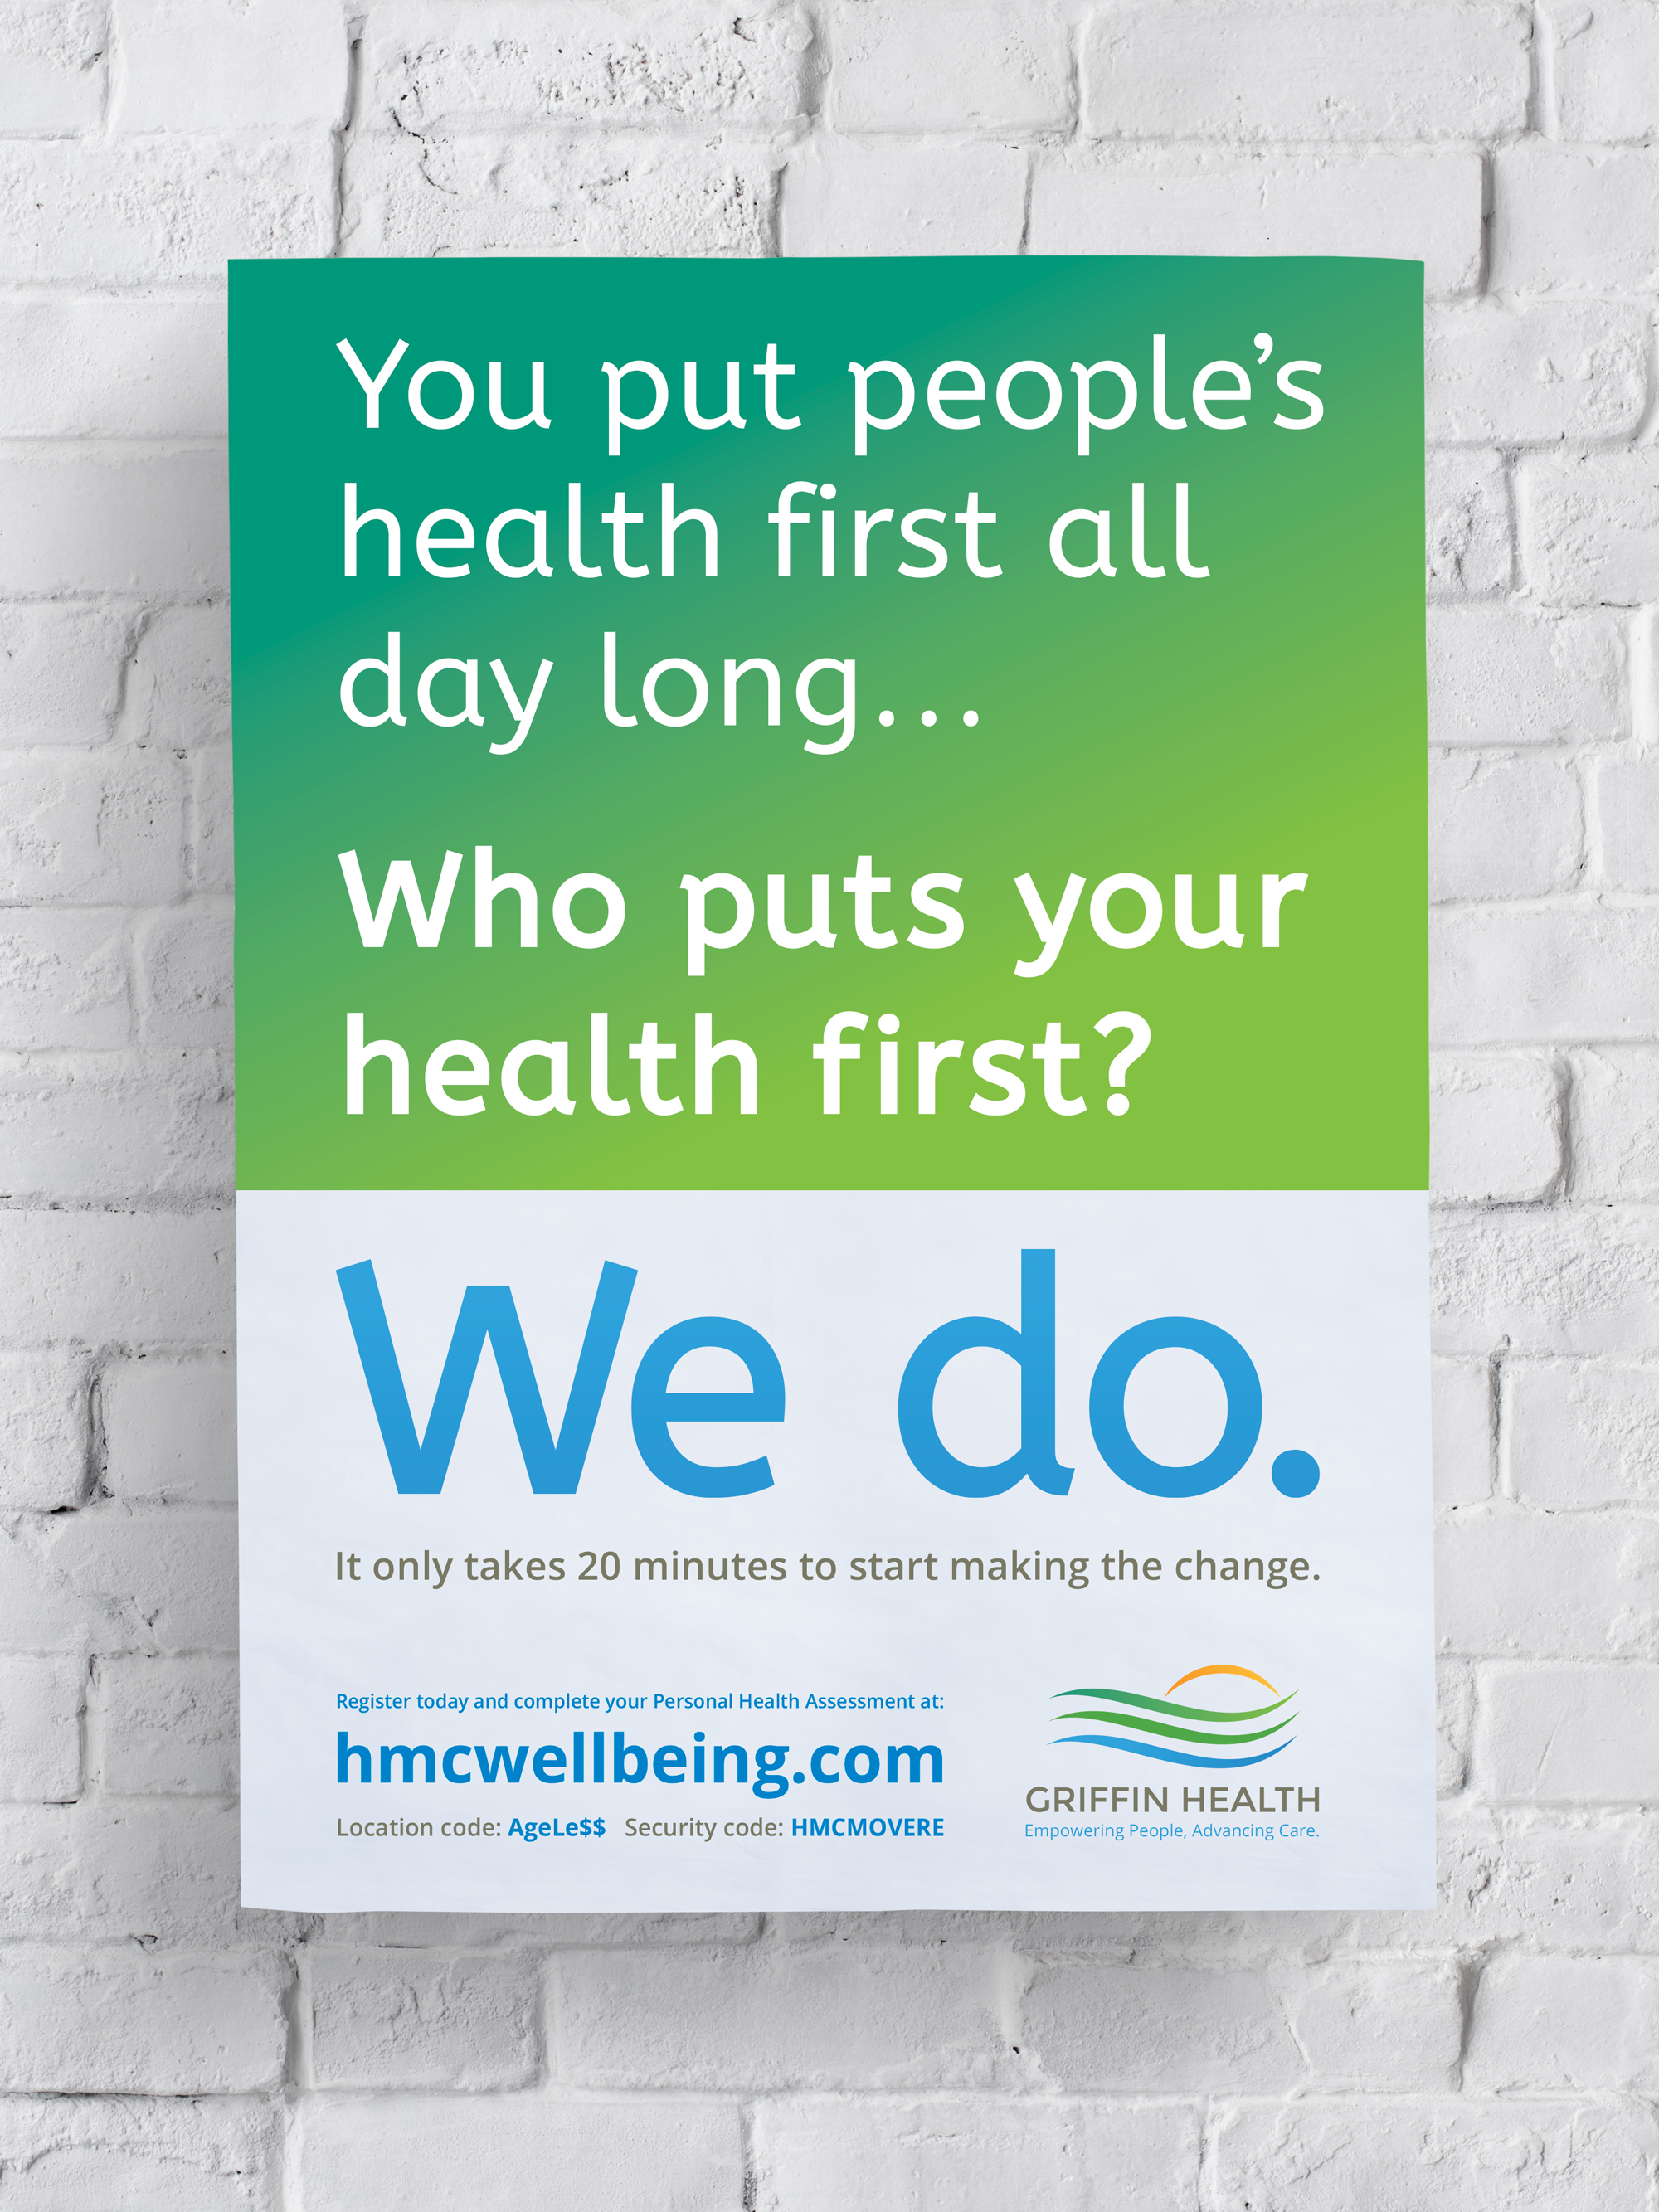 Employee Wellness Campaign Poster